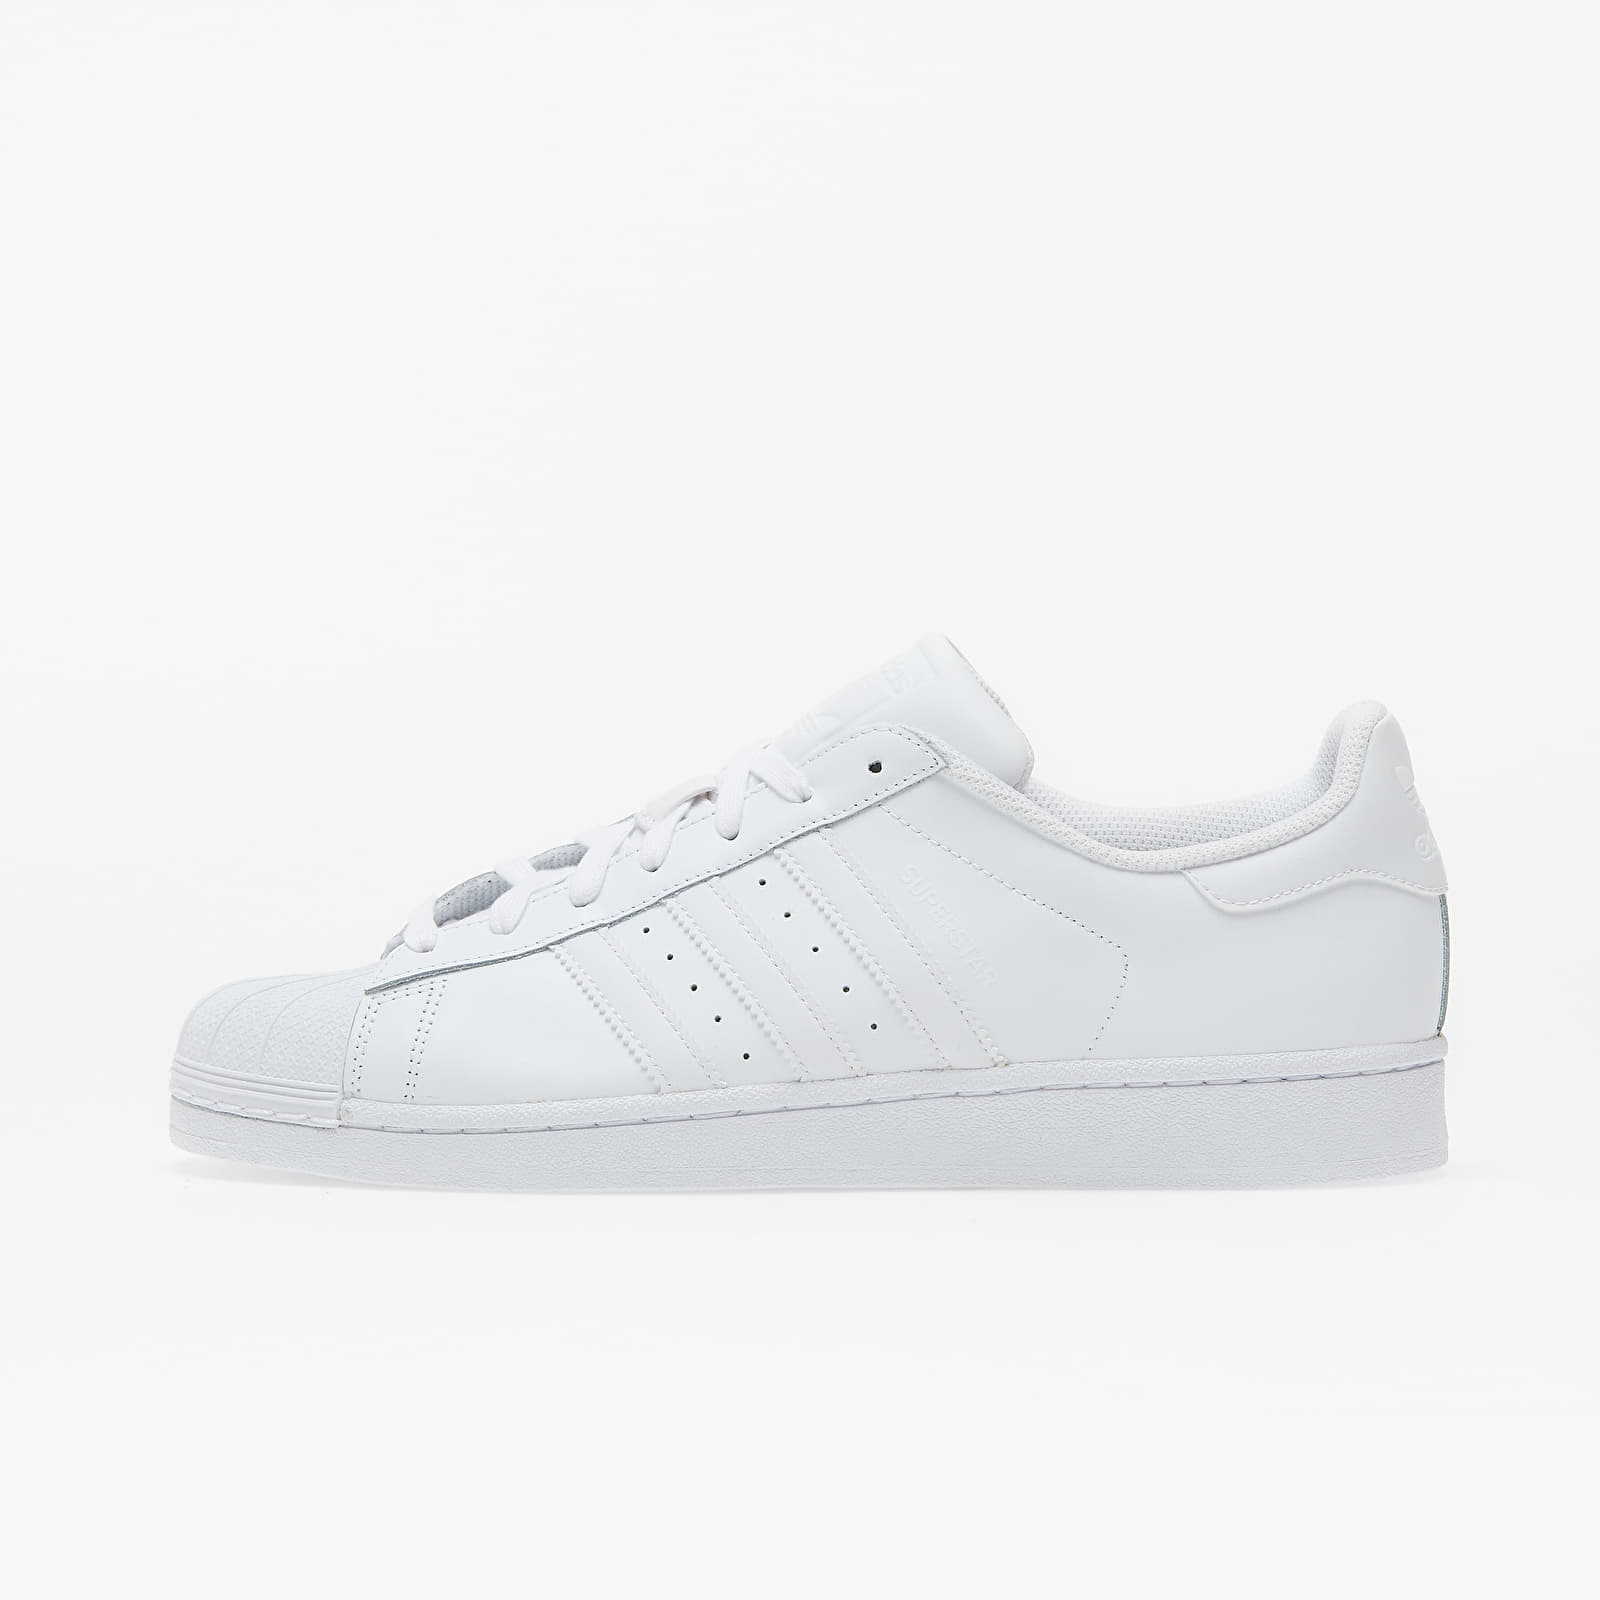 adidas Superstar Foundation Ftw White/ Ftw White/ Ftw White EUR 46